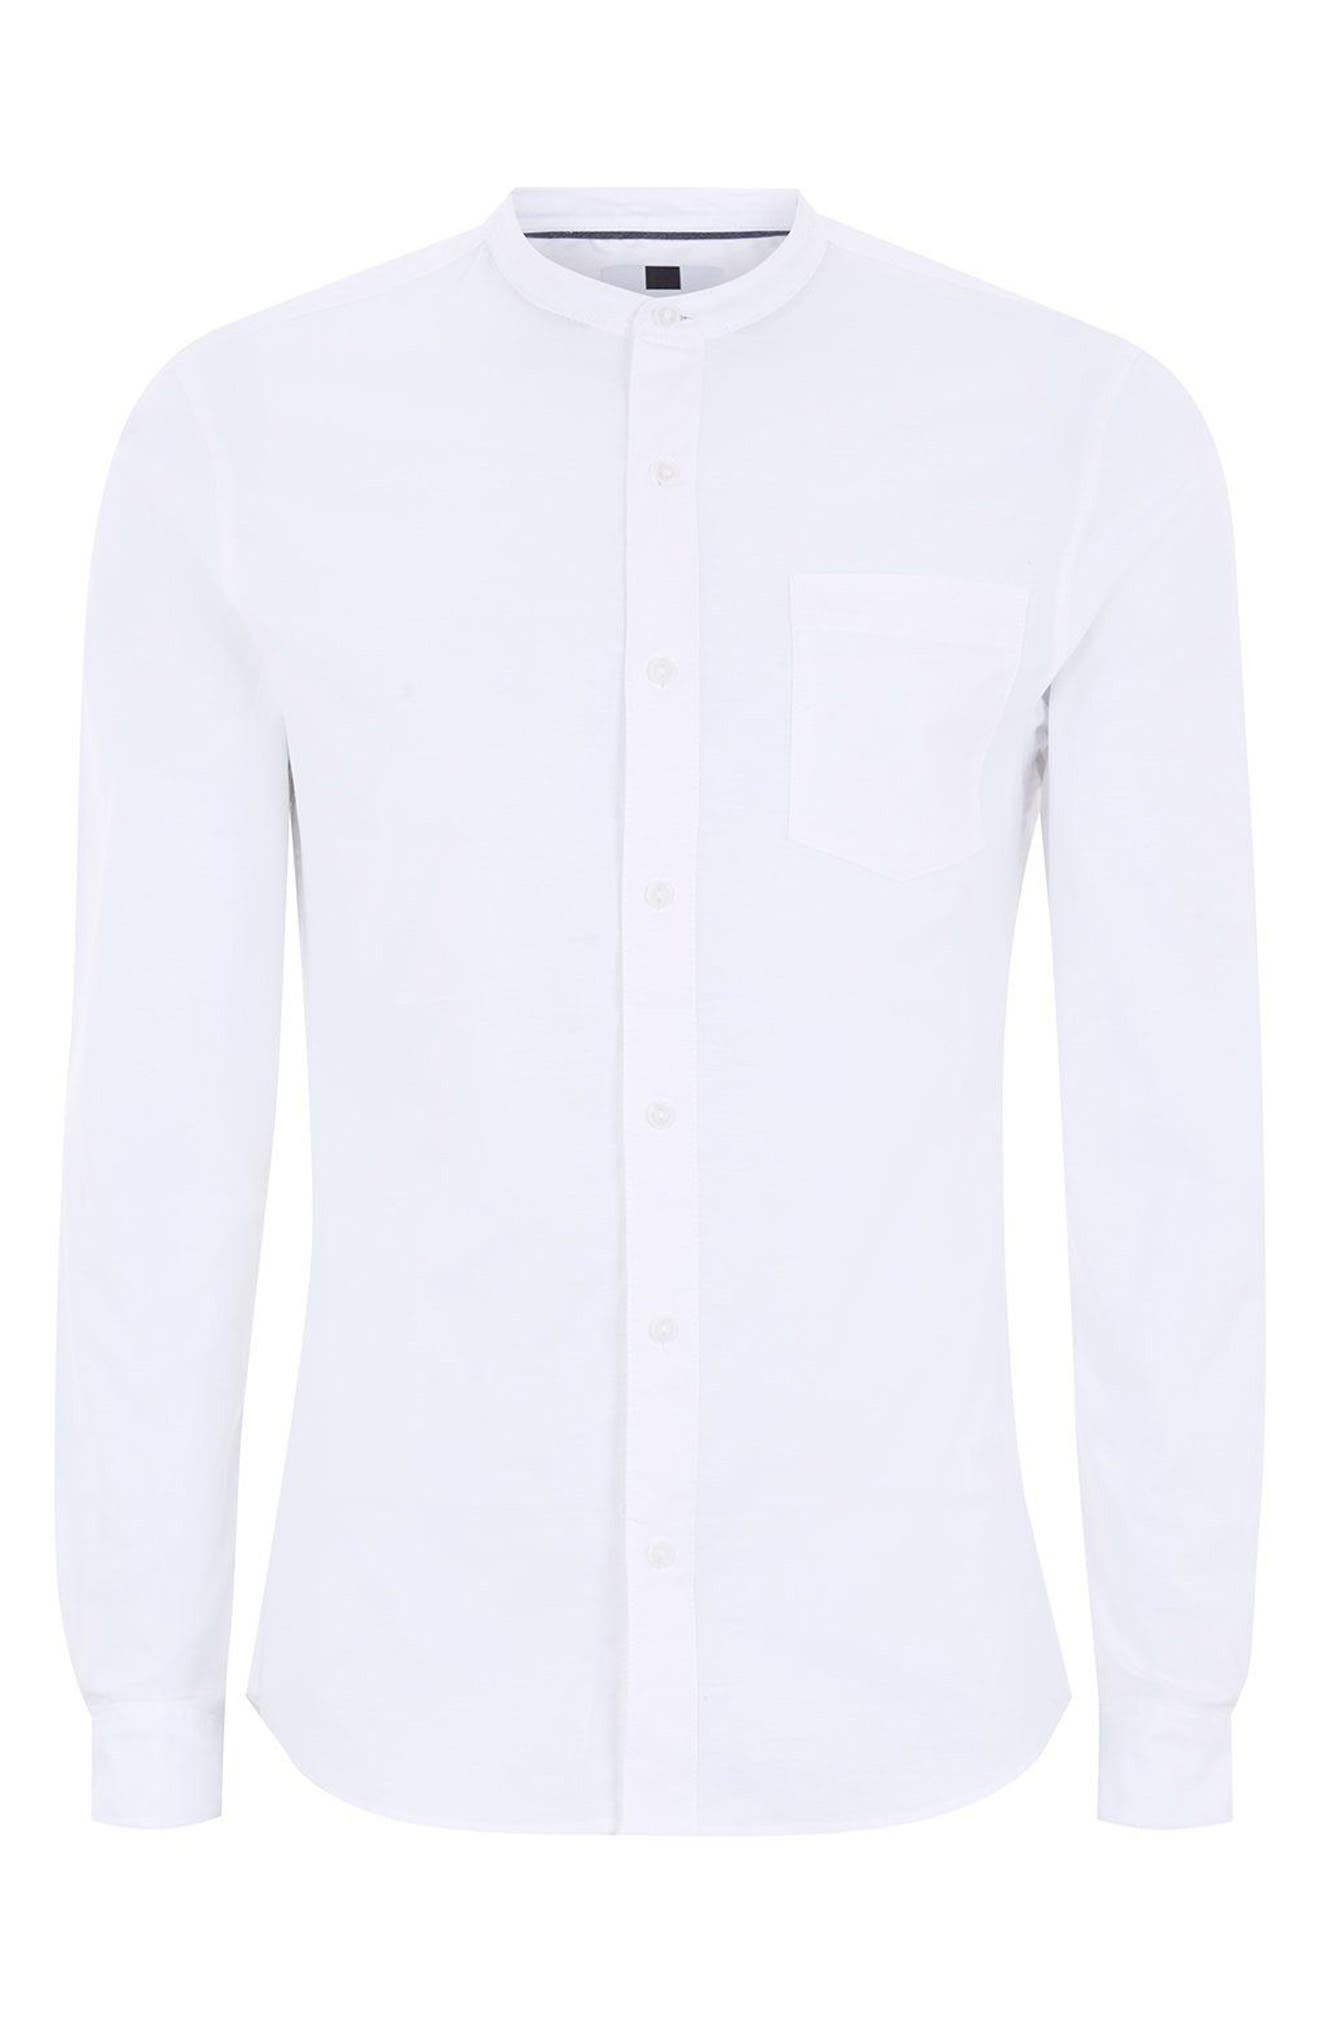 TOPMAN, Muscle Fit Band Collar Shirt, Alternate thumbnail 6, color, WHITE